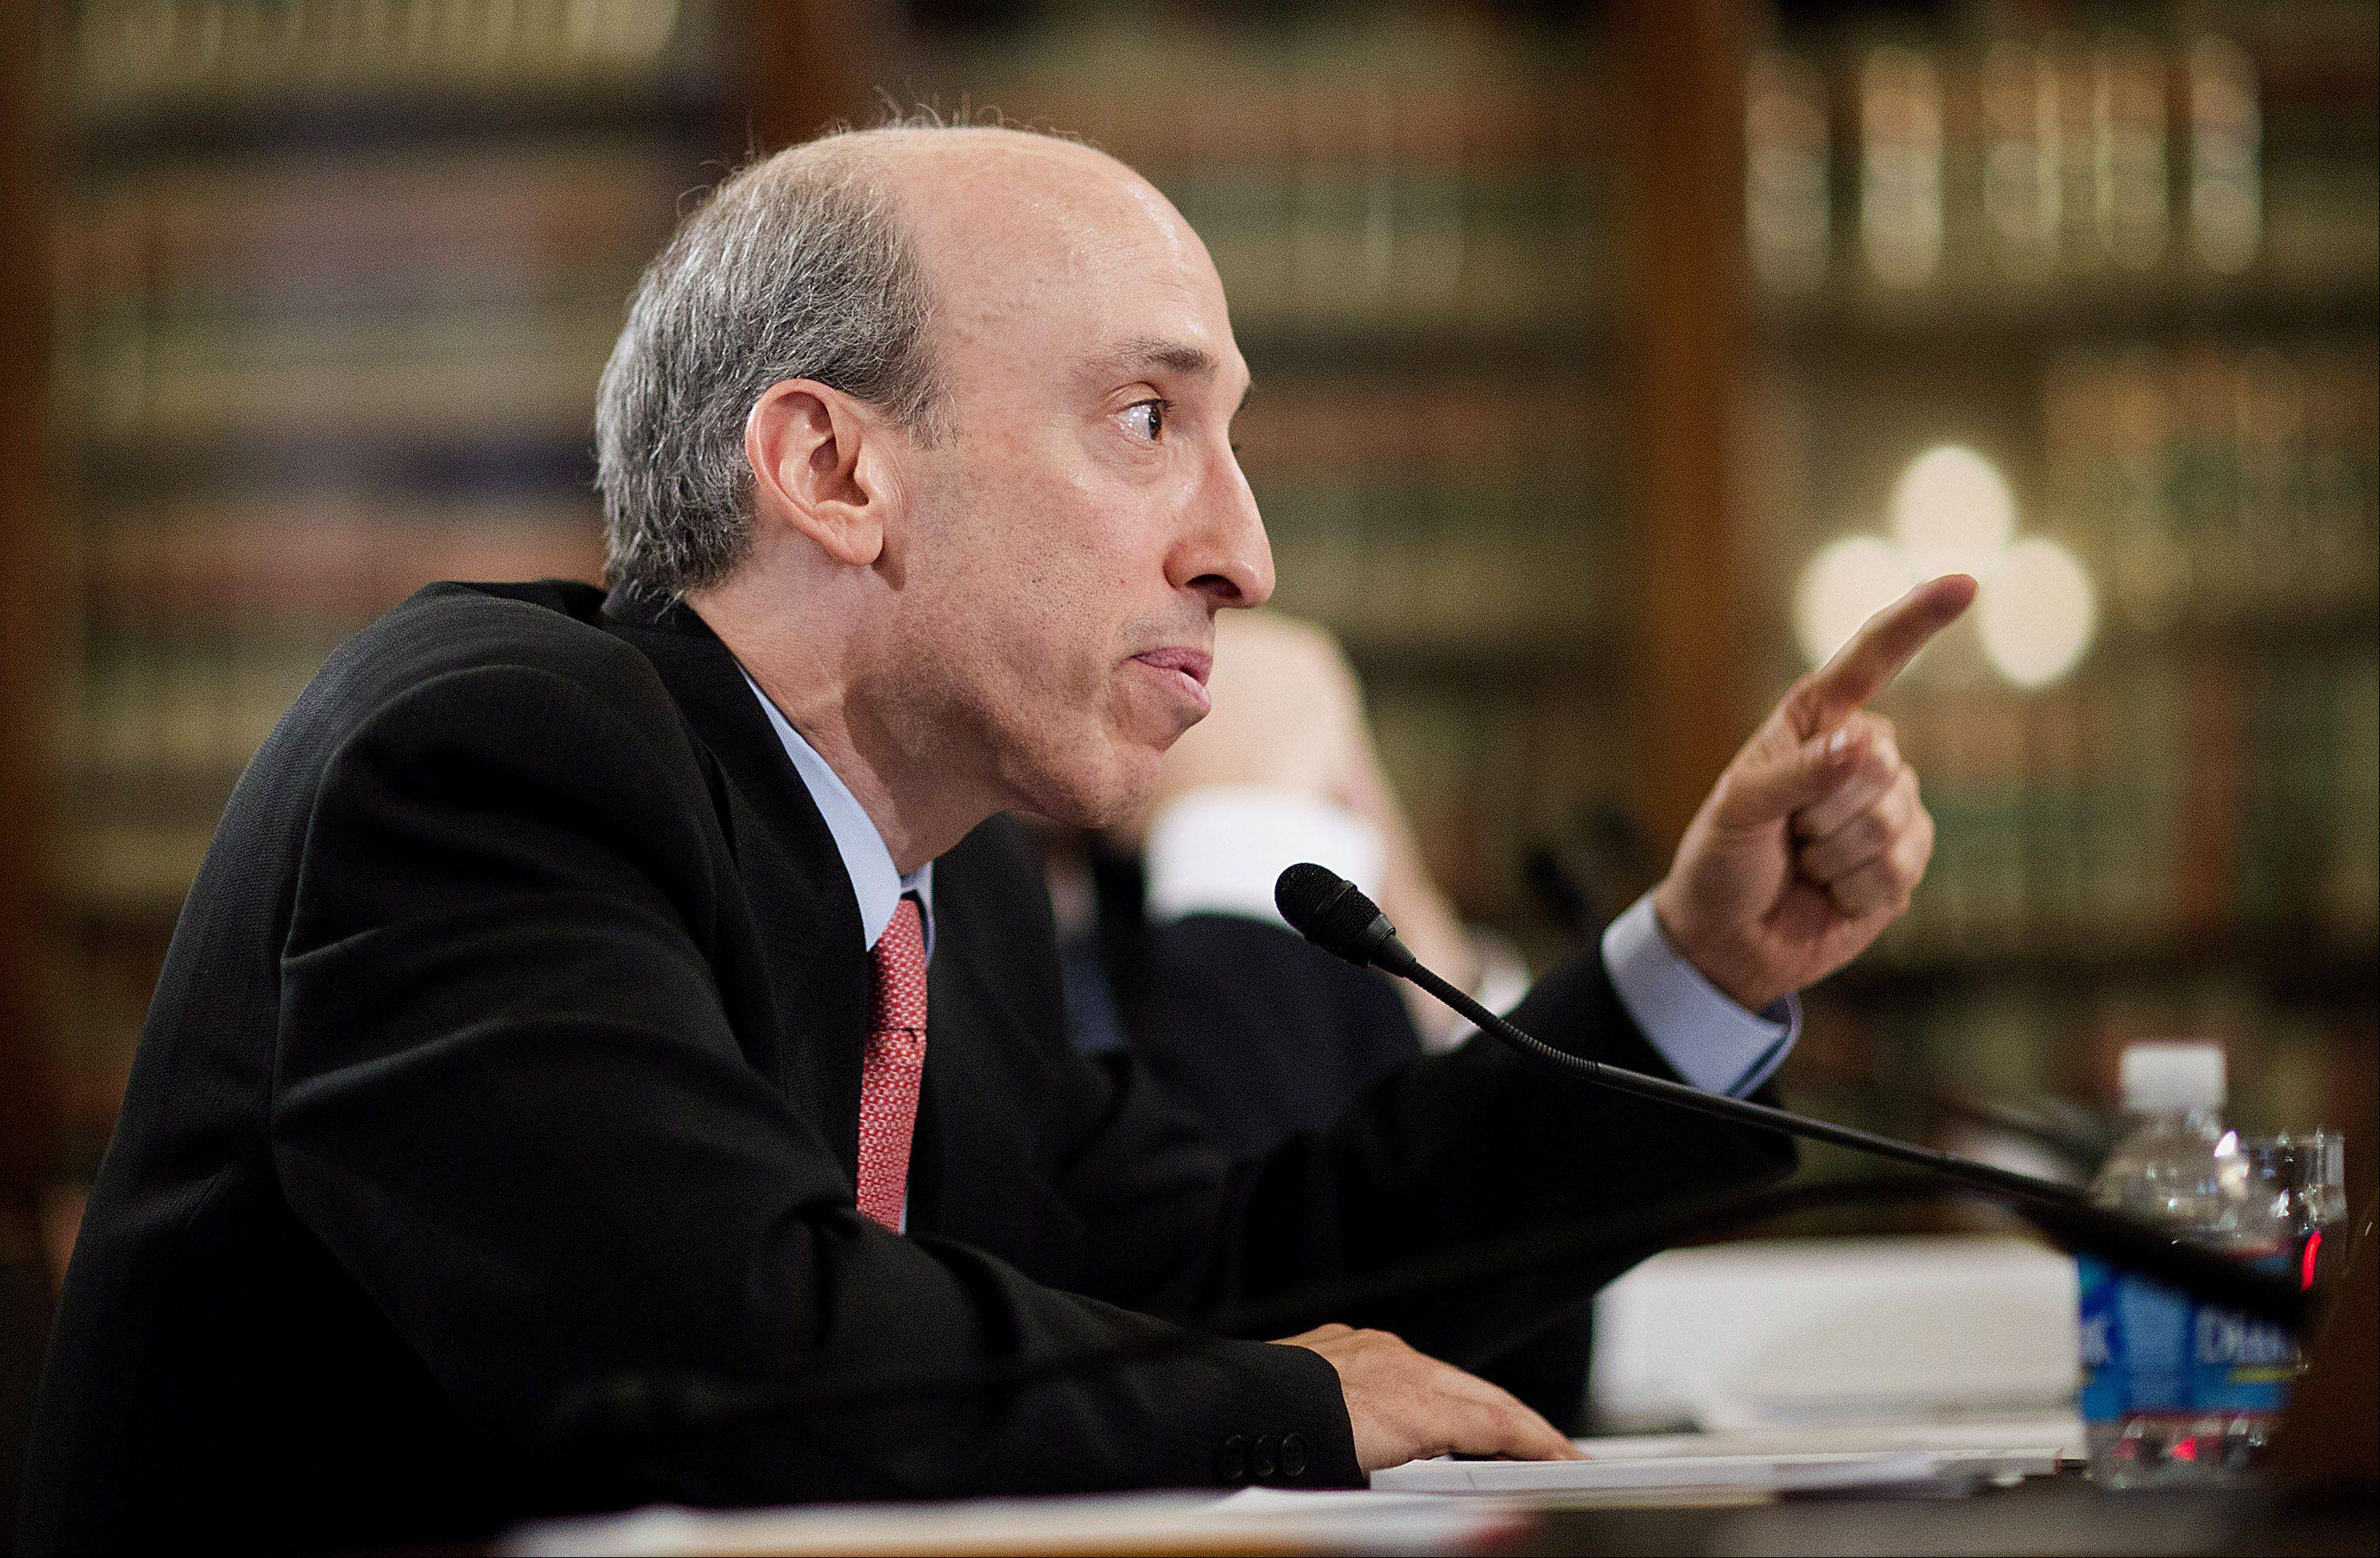 Gary Gensler, chairman of the Commodities Futures Trading Commission (CFTC), testifies to the Senate Agriculture Committee in Washington, D.C. The CFTC reviewed operations at Peregrine Financial Group Inc. at least twice since 2006 without detecting the fraud that led to the collapse of the futures broker and a $200 million shortfall in client funds.